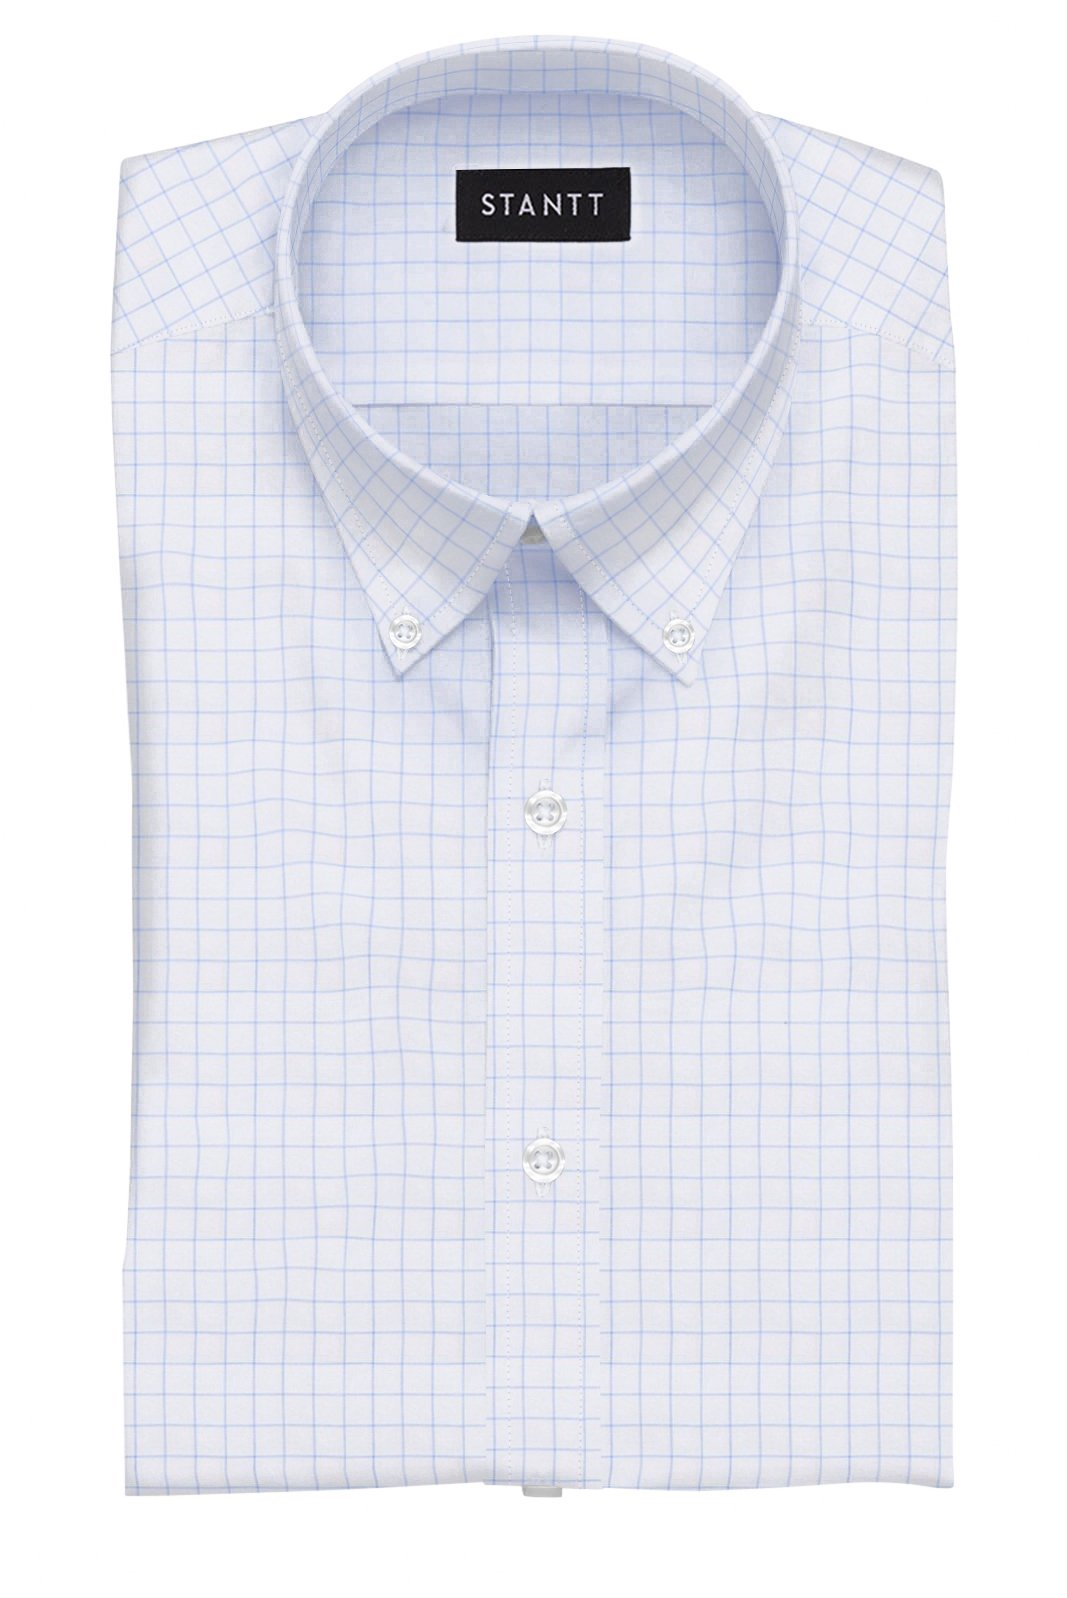 Blue Hairline Windowpane: Button-Down Collar, Barrel Cuff